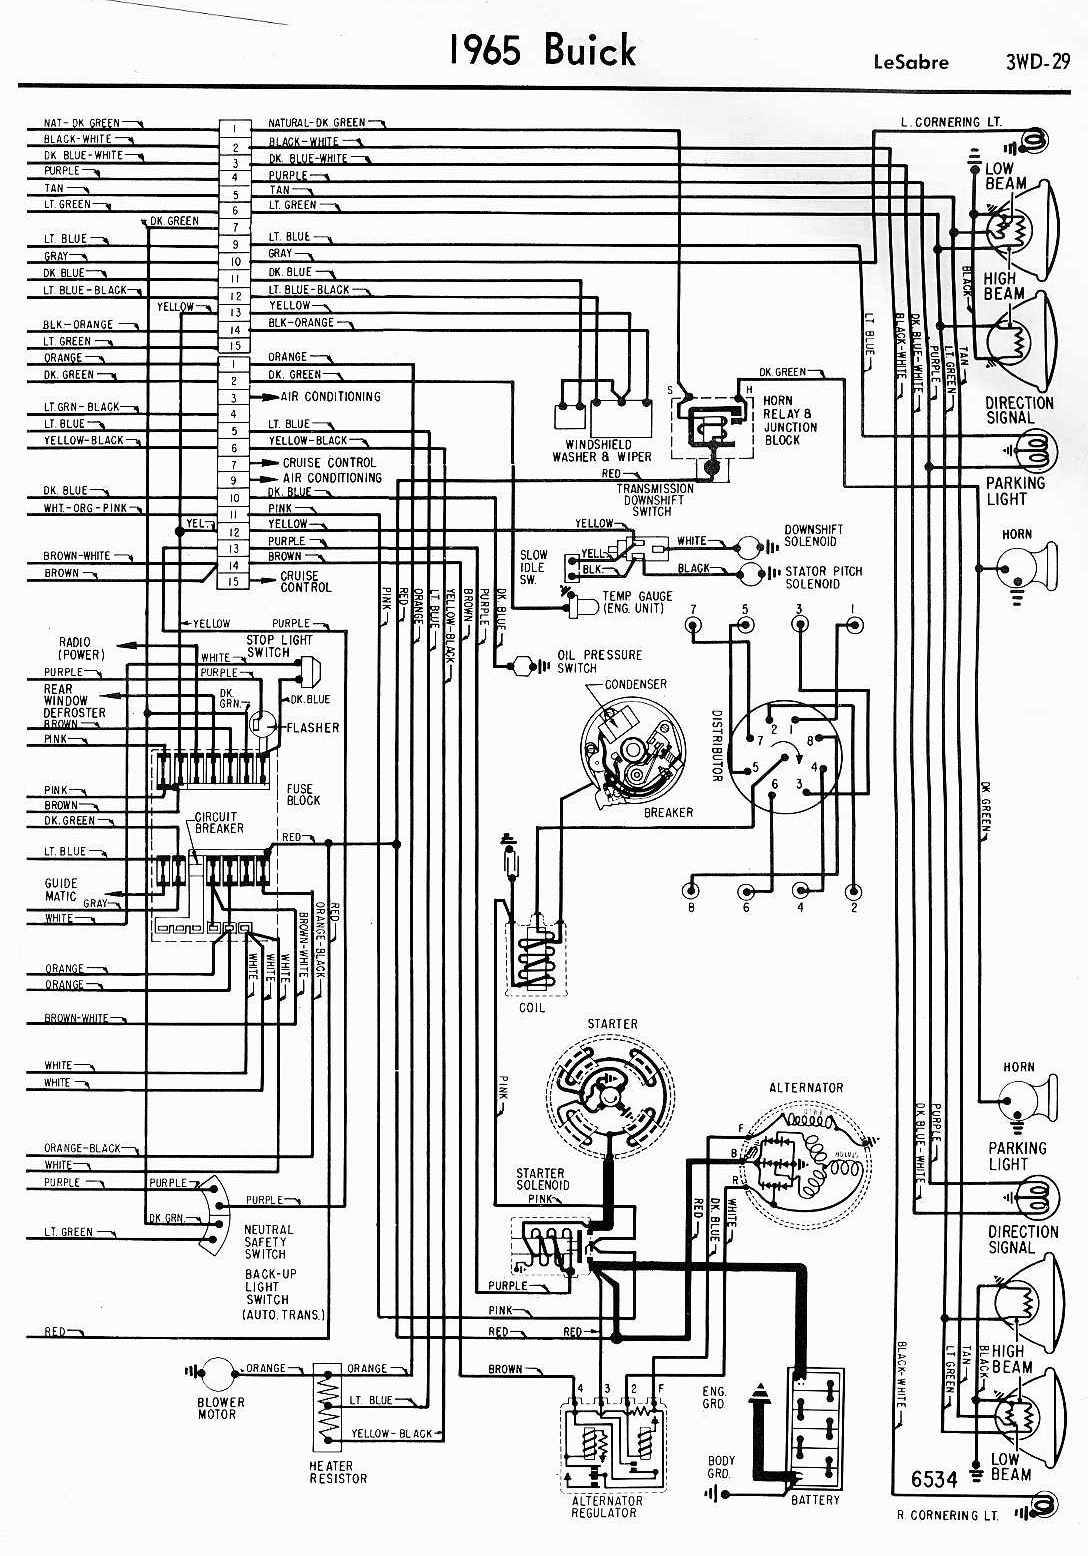 Buick Car Manuals Wiring Diagrams Pdf Fault Codes 1967 Lesabre Download